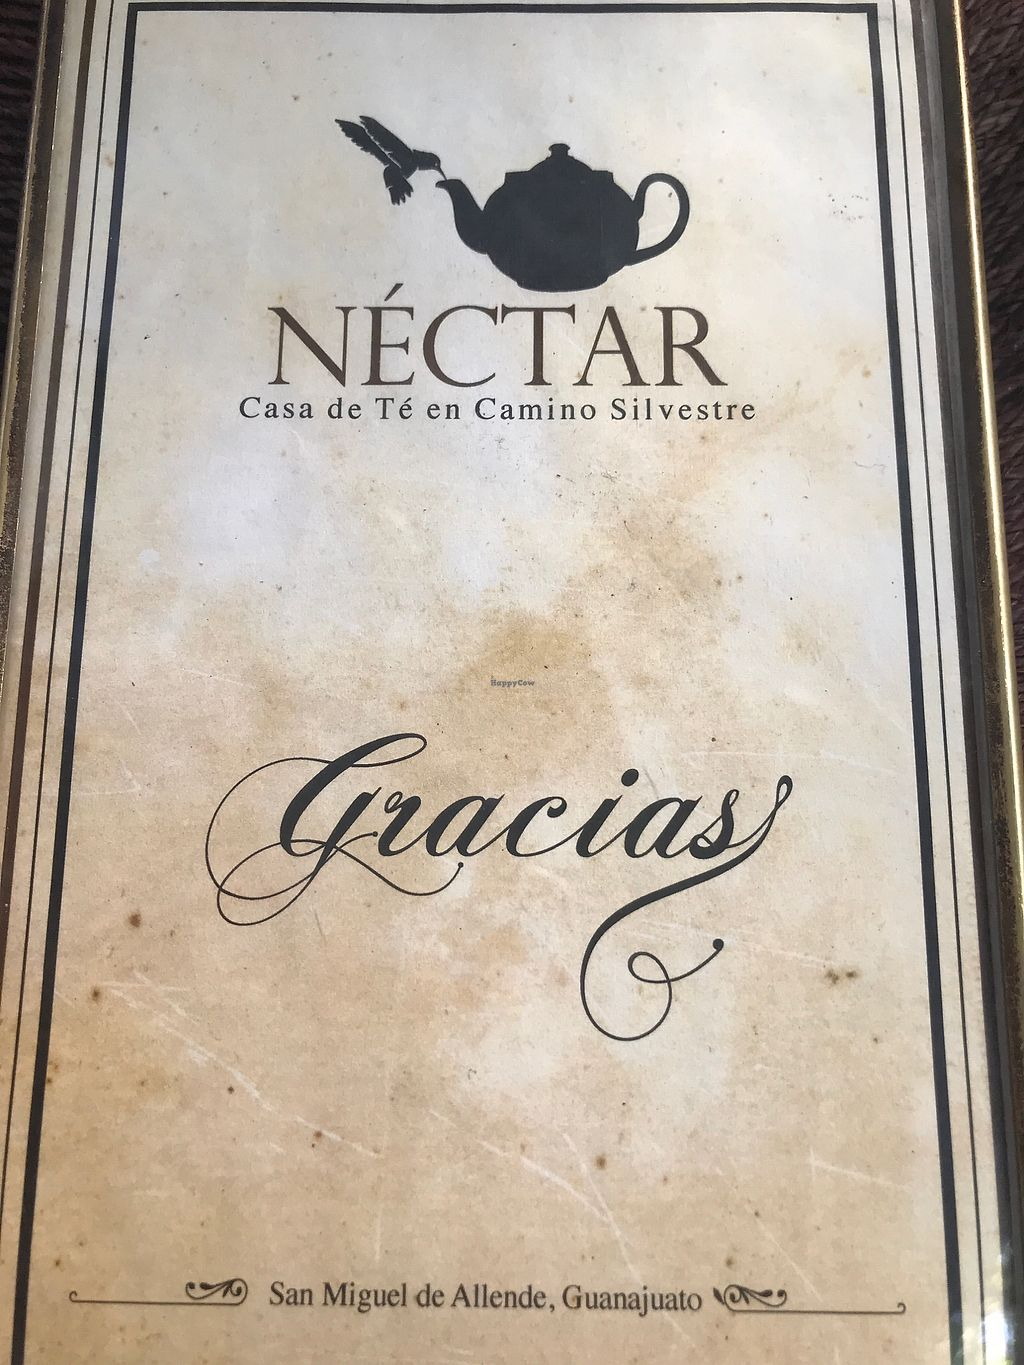 """Photo of Nectar  by <a href=""""/members/profile/MarinKat"""">MarinKat</a> <br/>Elegant menu to match the dining experience <br/> October 25, 2017  - <a href='/contact/abuse/image/51693/318845'>Report</a>"""